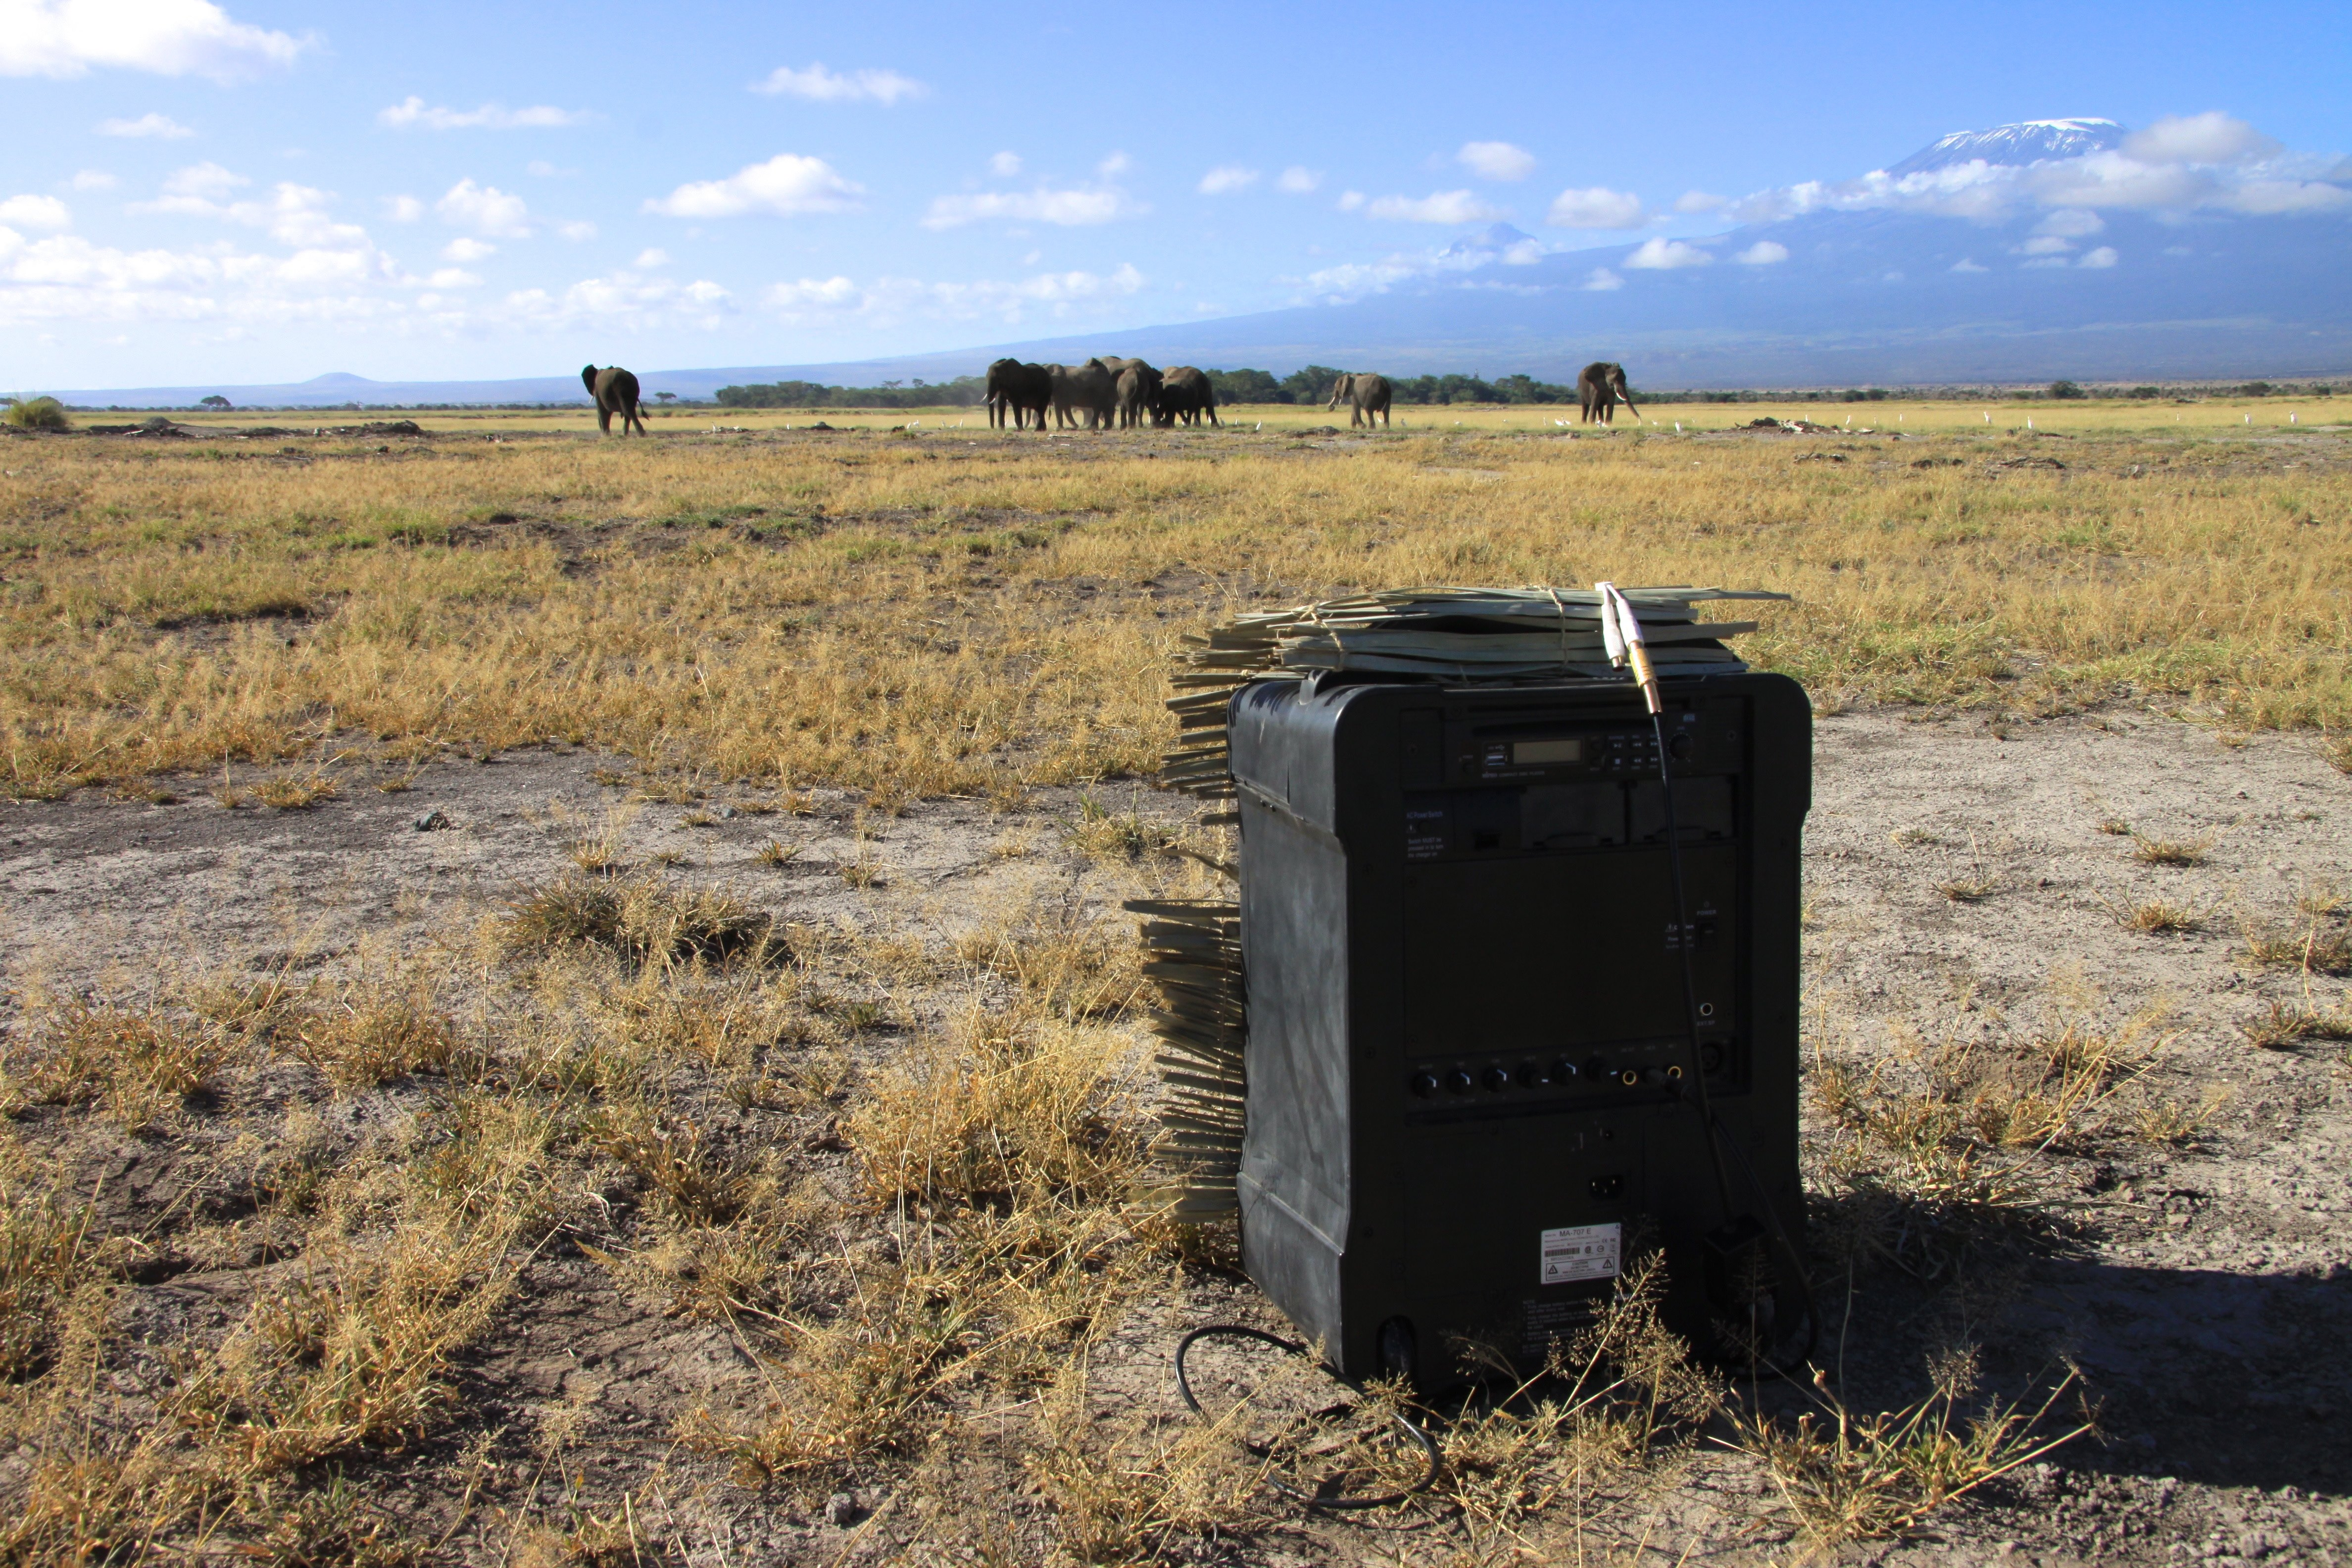 Loudspeaker in the field close to the elephant family, ready to play the voices. (Photo courtesy of Graeme Shannon)